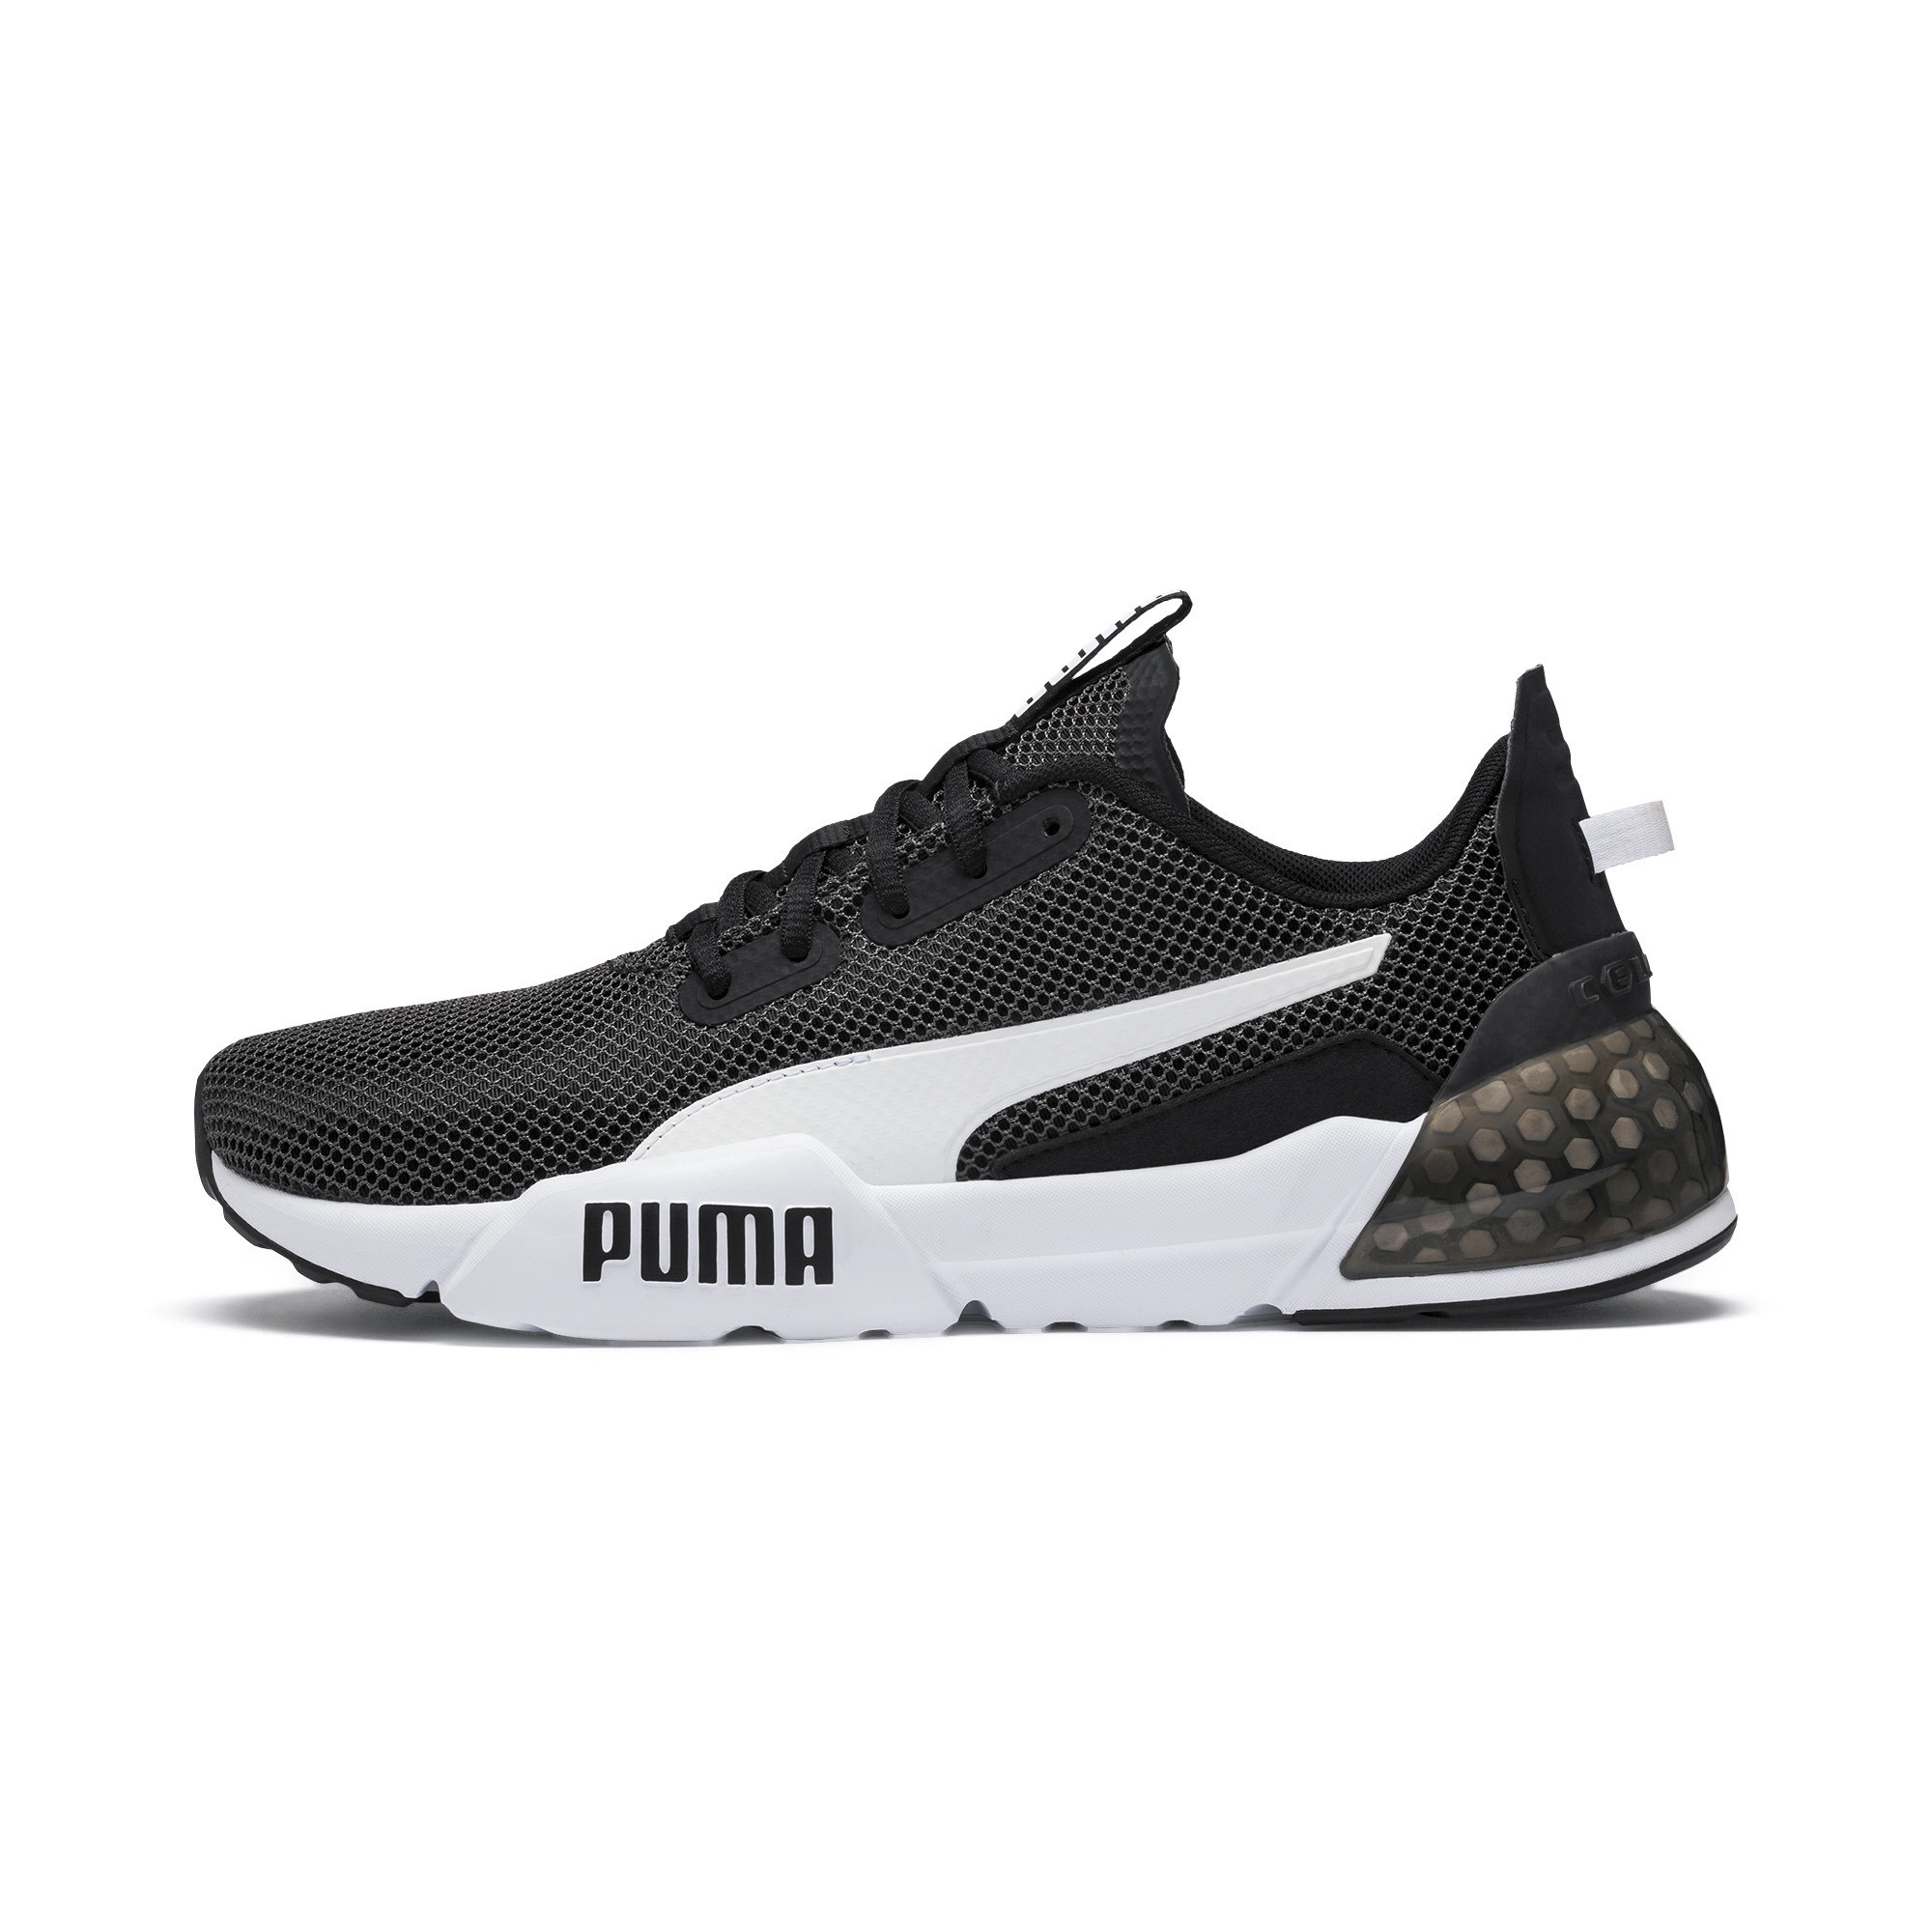 PUMA-Men-039-s-CELL-Phase-Training-Shoes thumbnail 23